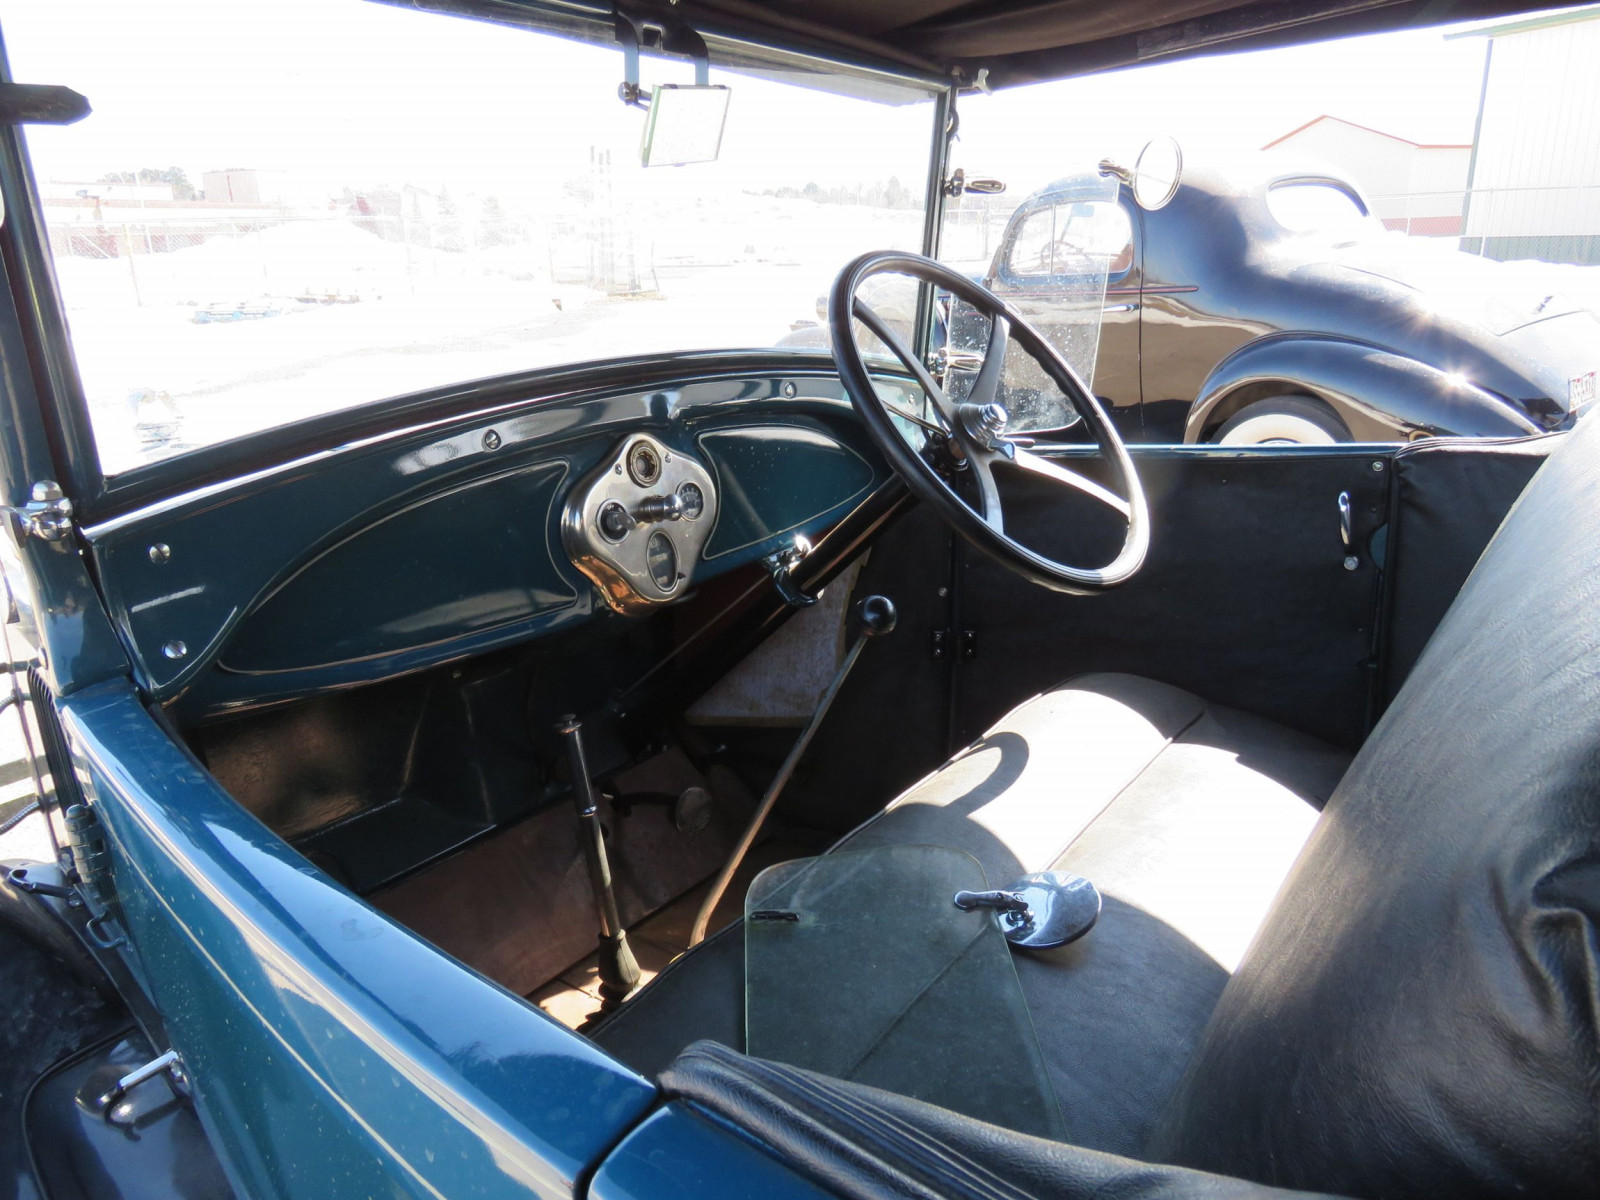 1929 Ford Model A Phaeton - Image 12